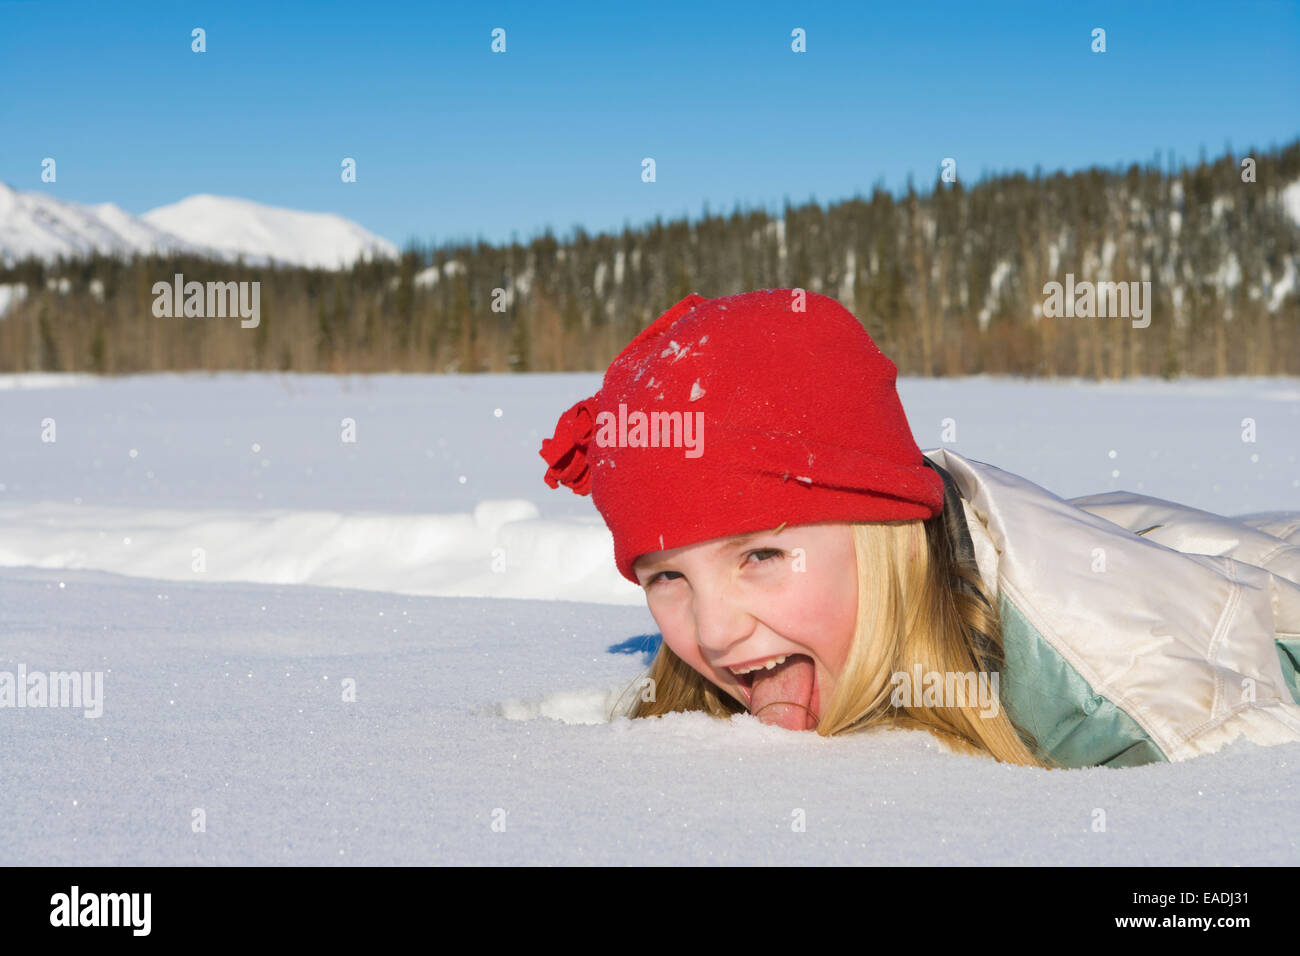 Young girl plays in the snow at Wiseman, Brooks Range, Arctic Alaska - Stock Image